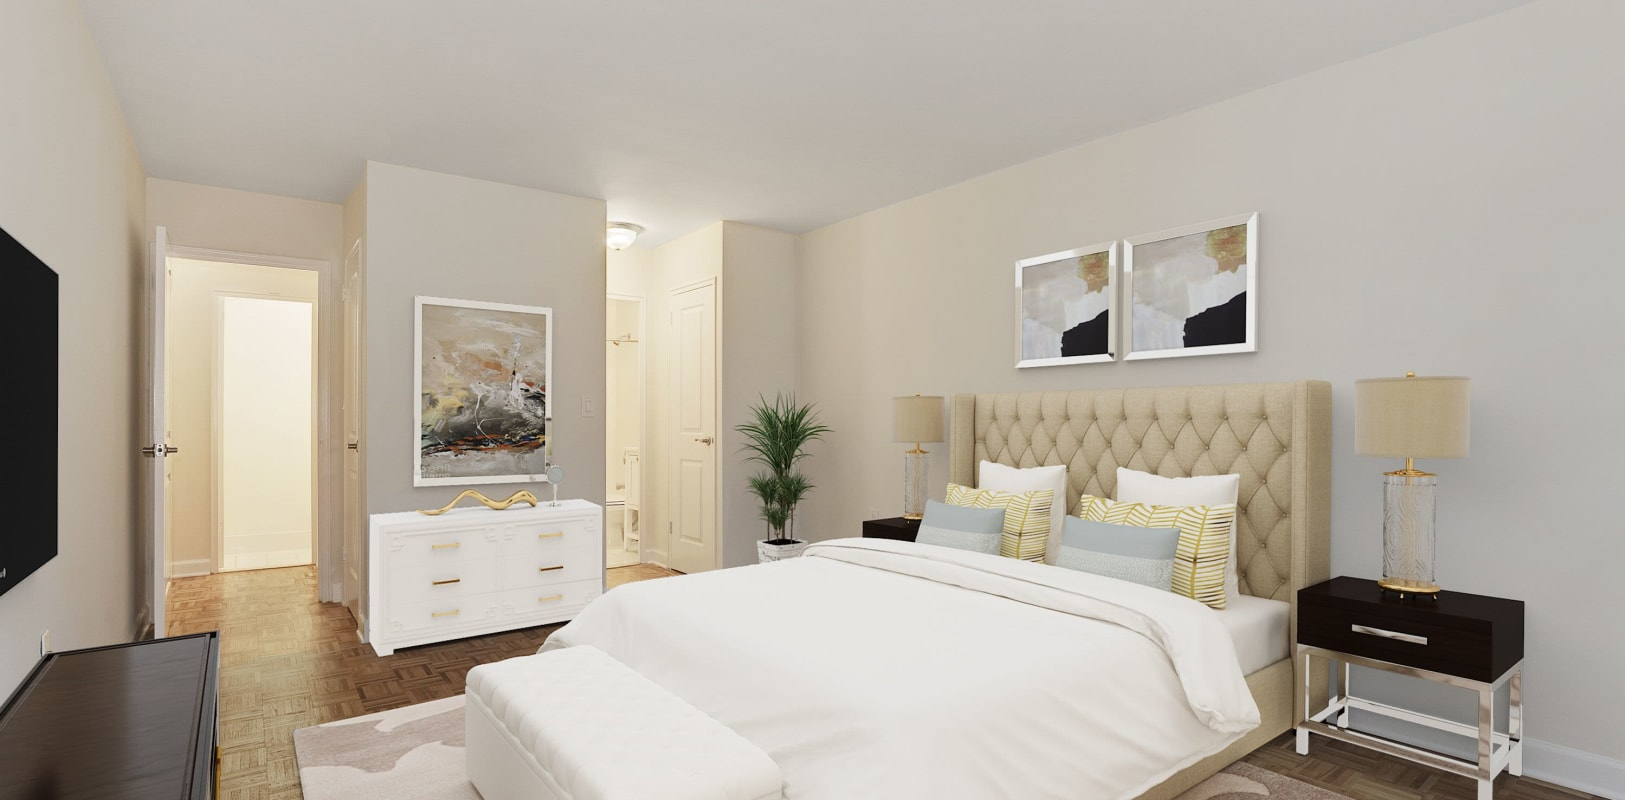 Cozy bedroom at Hamilton Court in Morristown, New Jersey